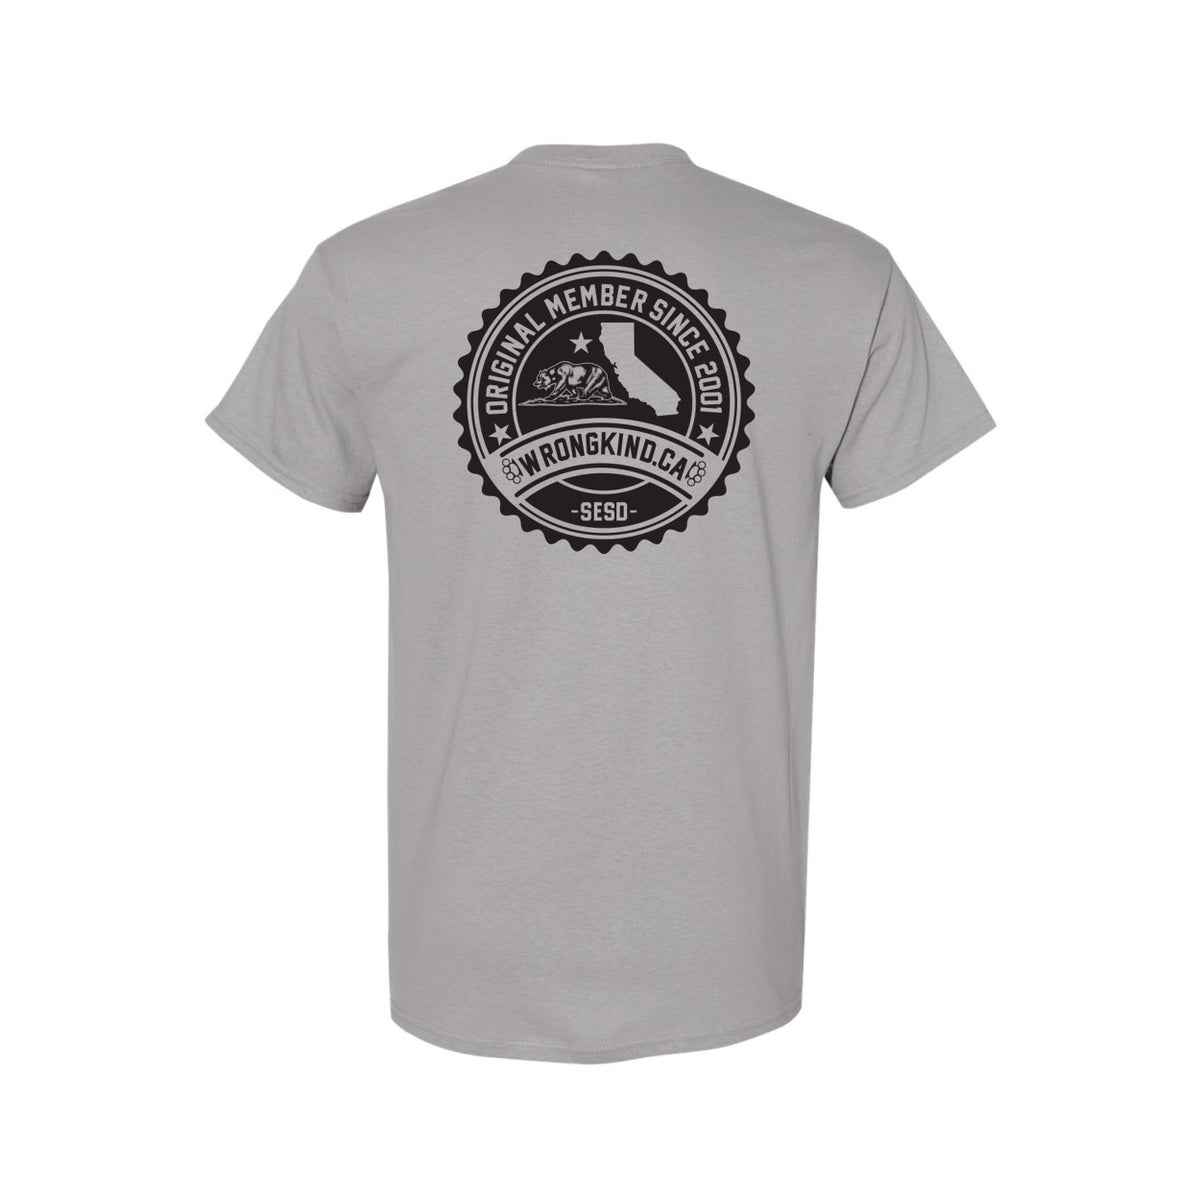 Image of Wrongkind Stamp T-Shirt (Gray w/ Black)